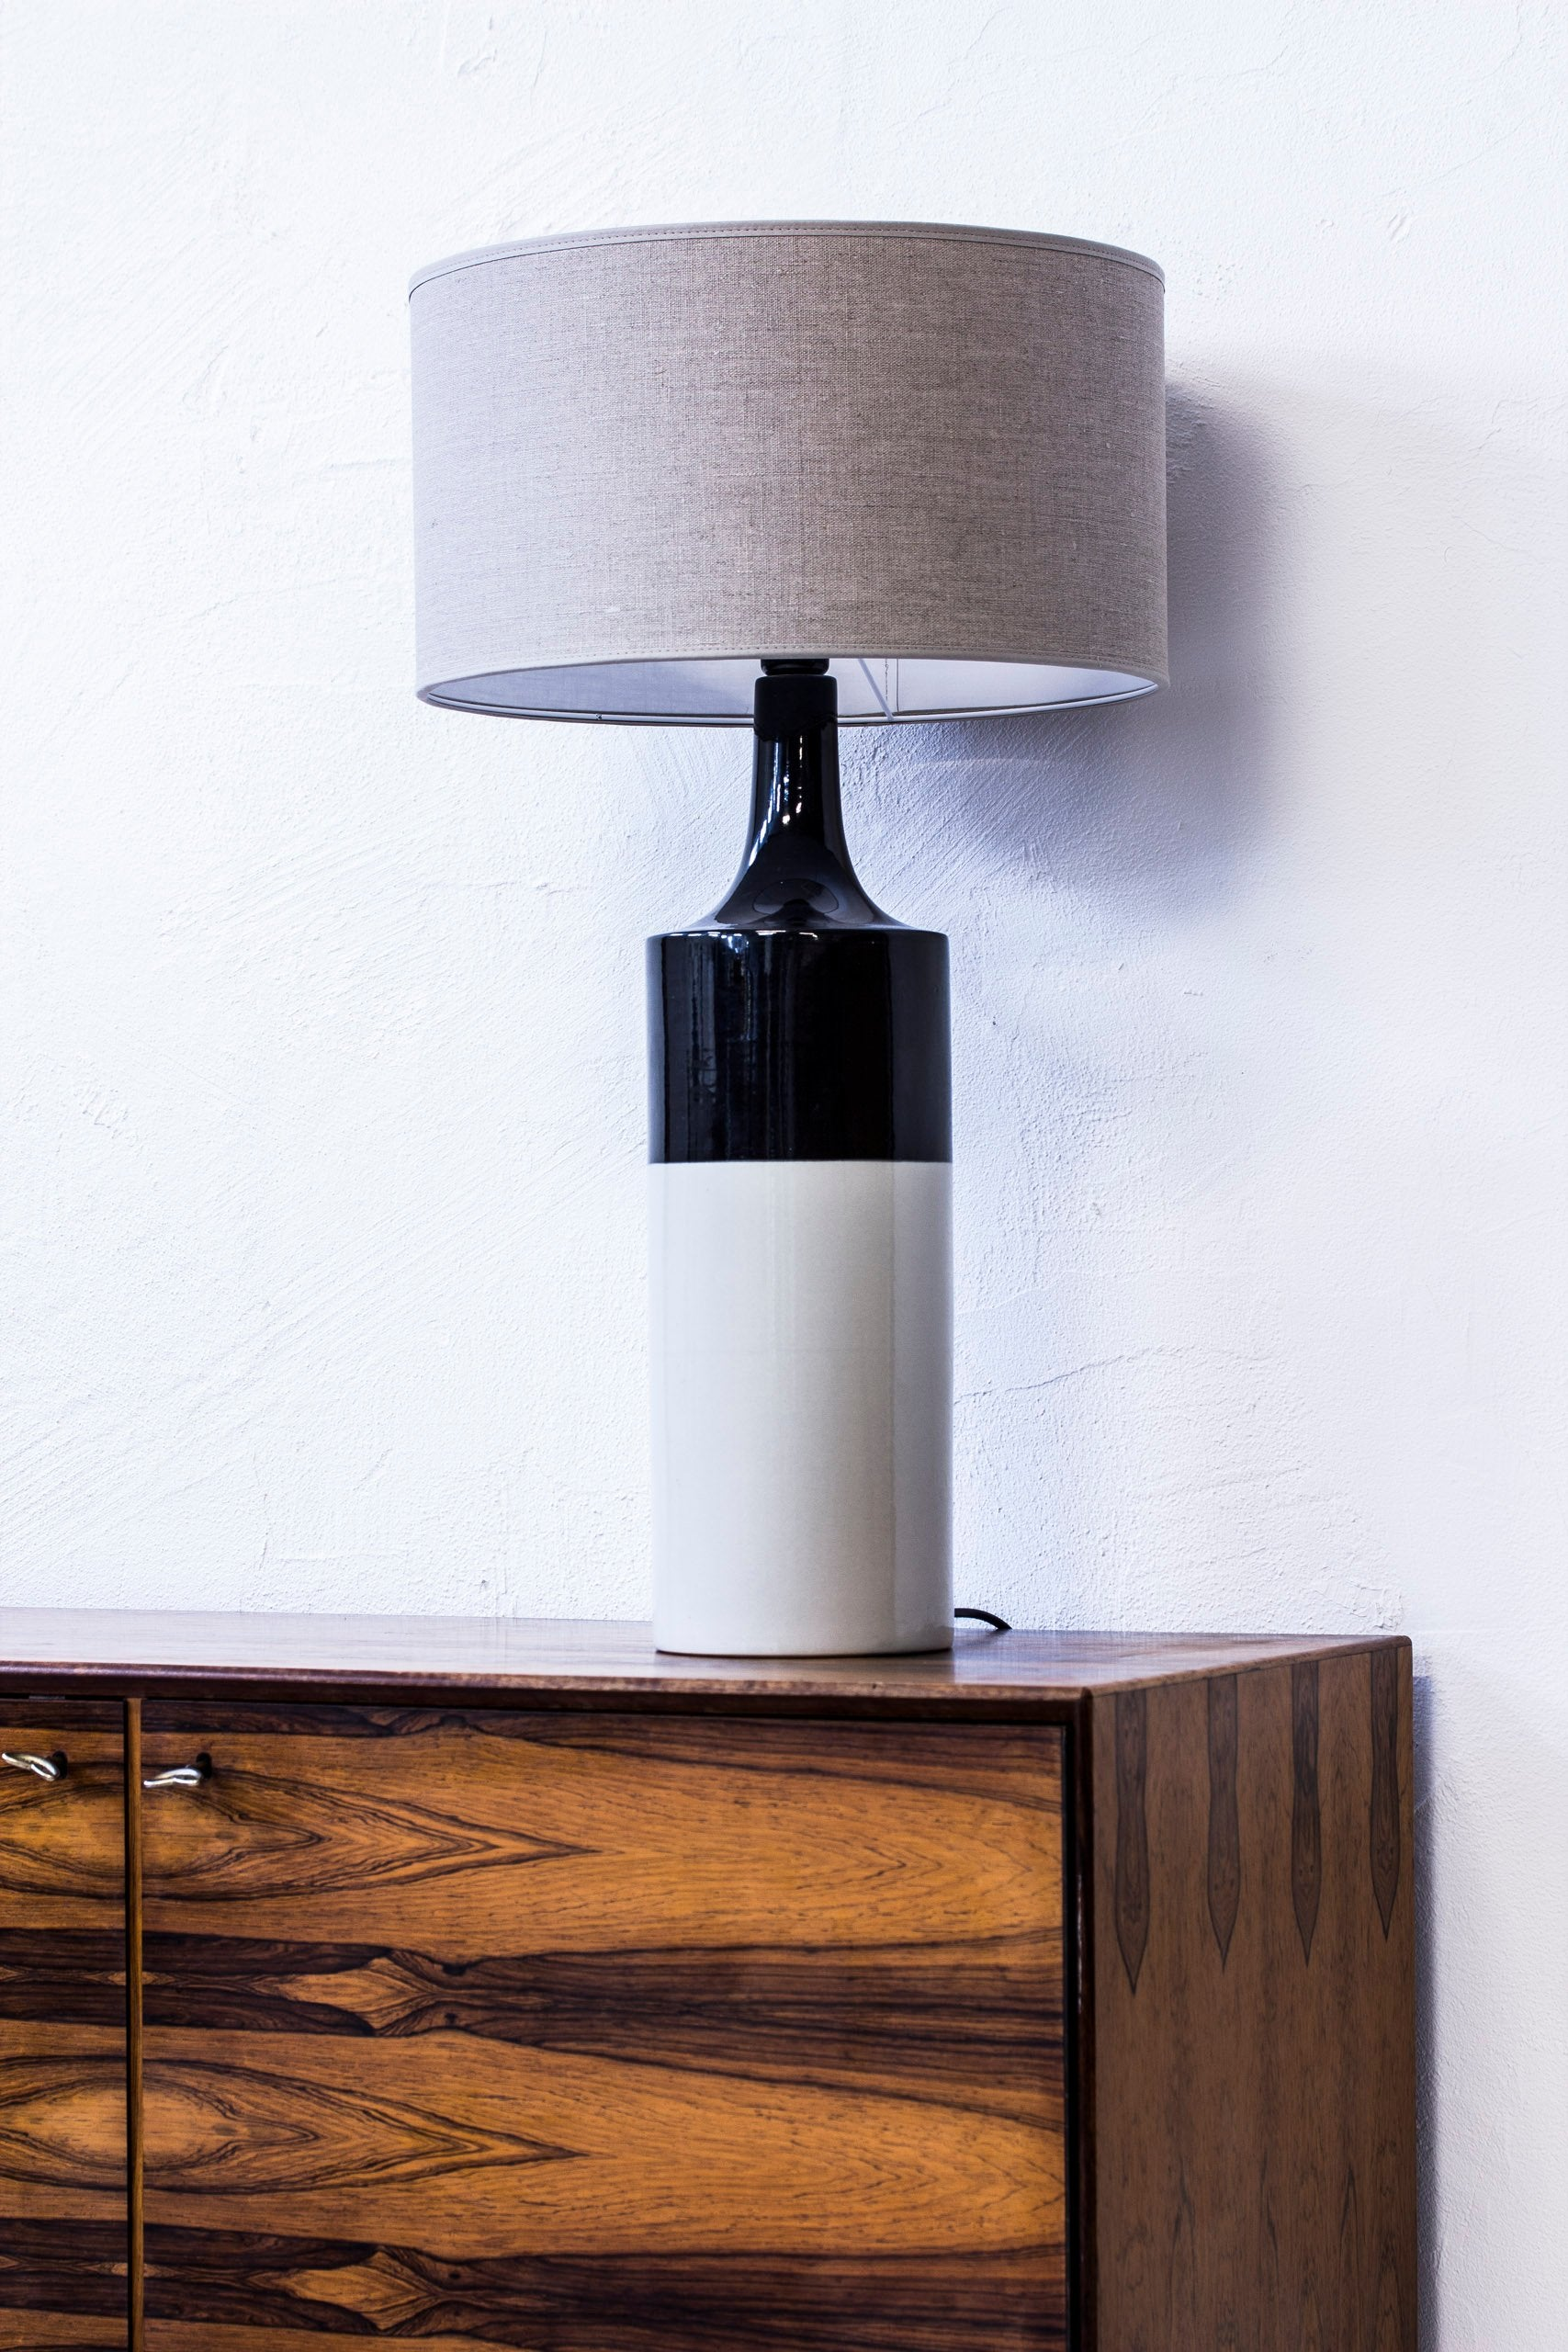 Table lamp by Gunvor Olin-Grönqvist for Arabia